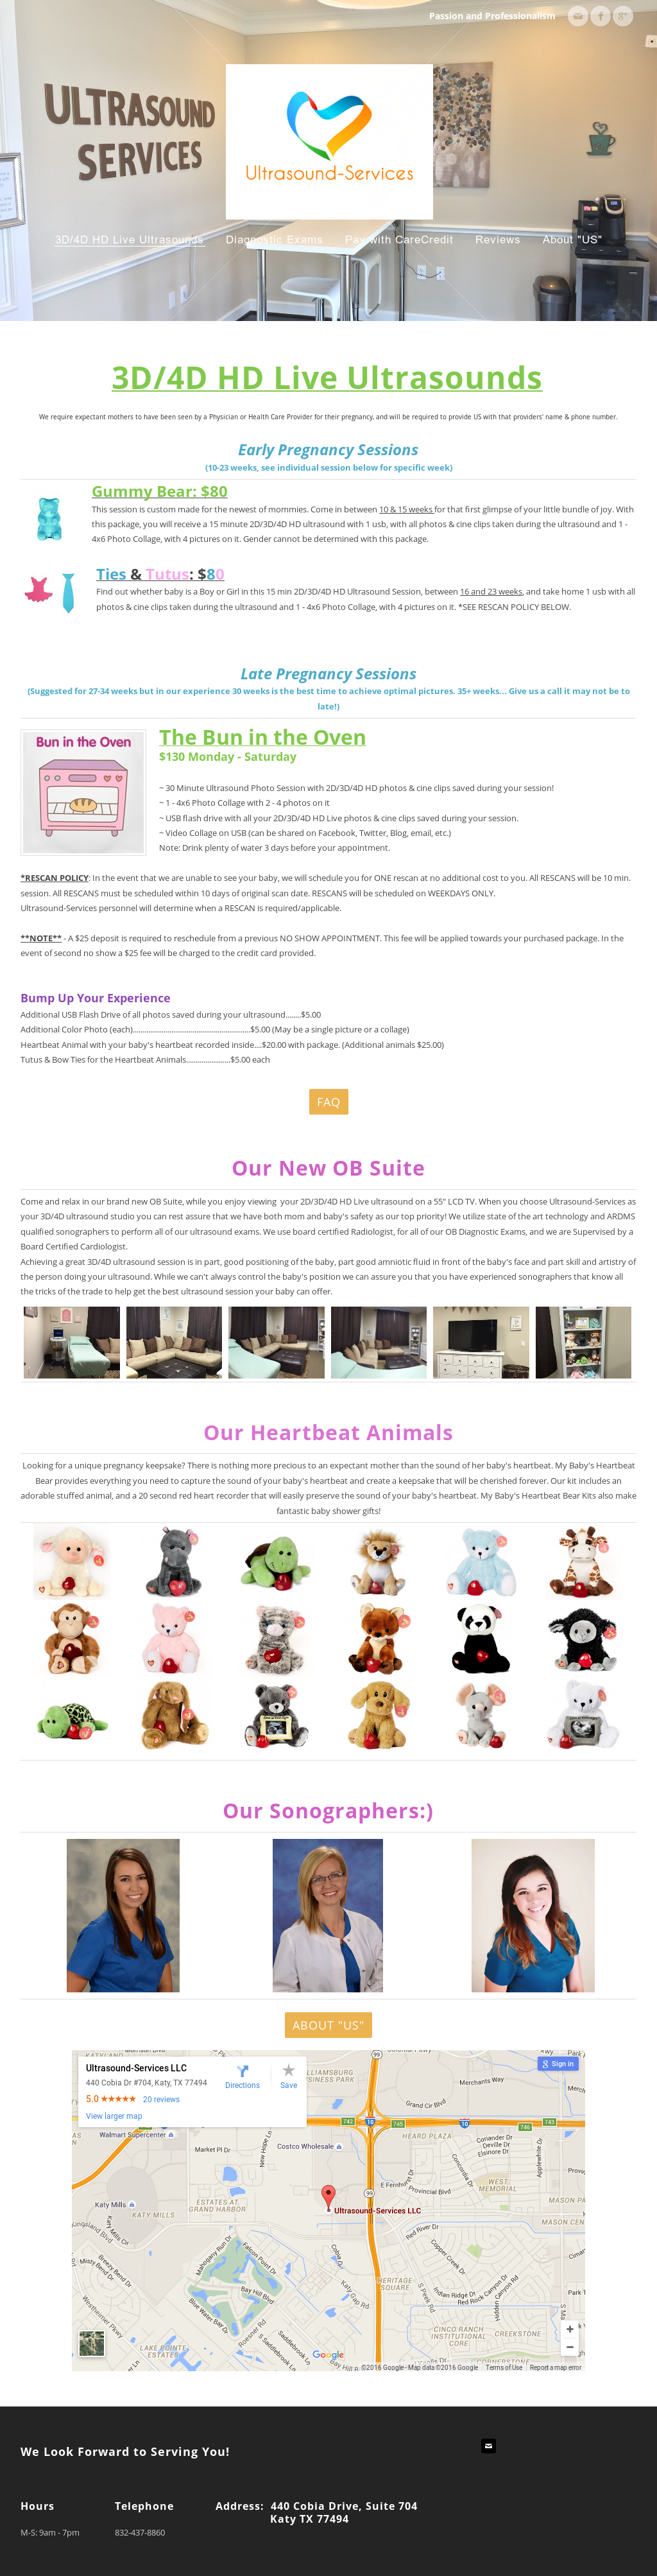 Ultrasound Services Competitors Revenue And Employees Owler Reguler 2dweekdays Company Profile